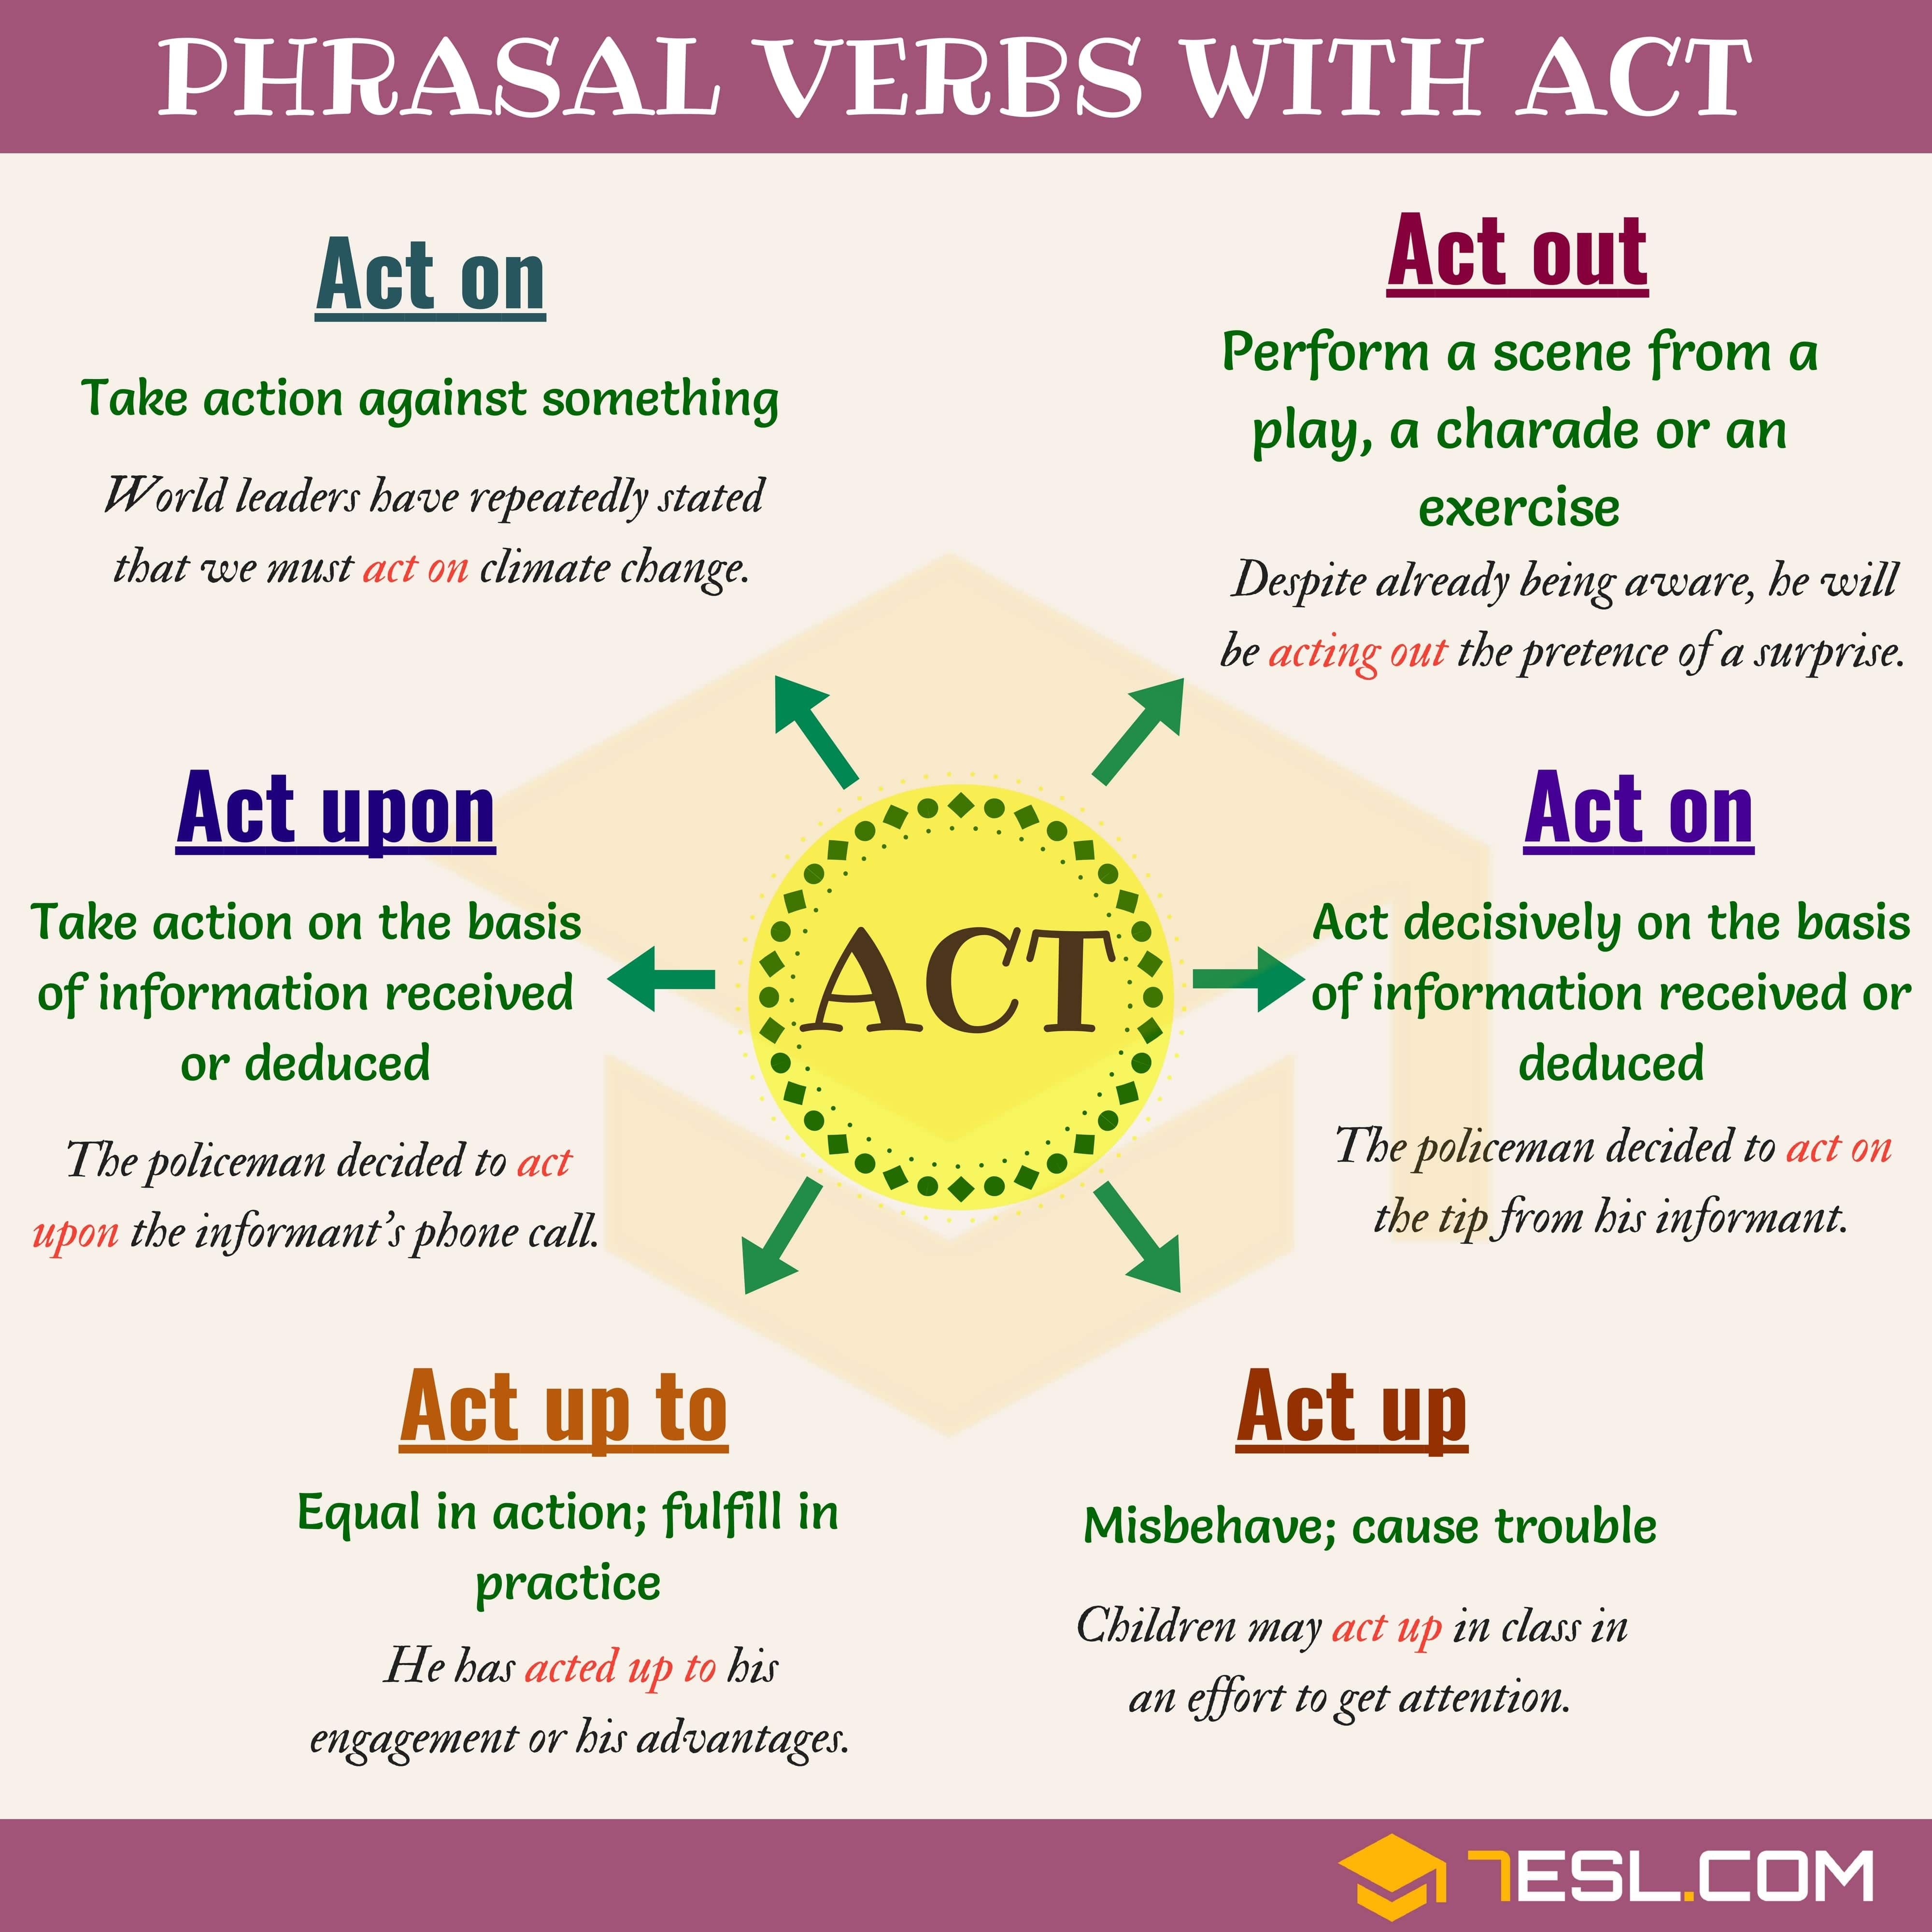 Phrasal Verbs With Act Act On Act Out Act Up Act Upon 7esl Vocabulario Em Ingles Idioma Ingles Ensino De Ingles [ 4000 x 4000 Pixel ]